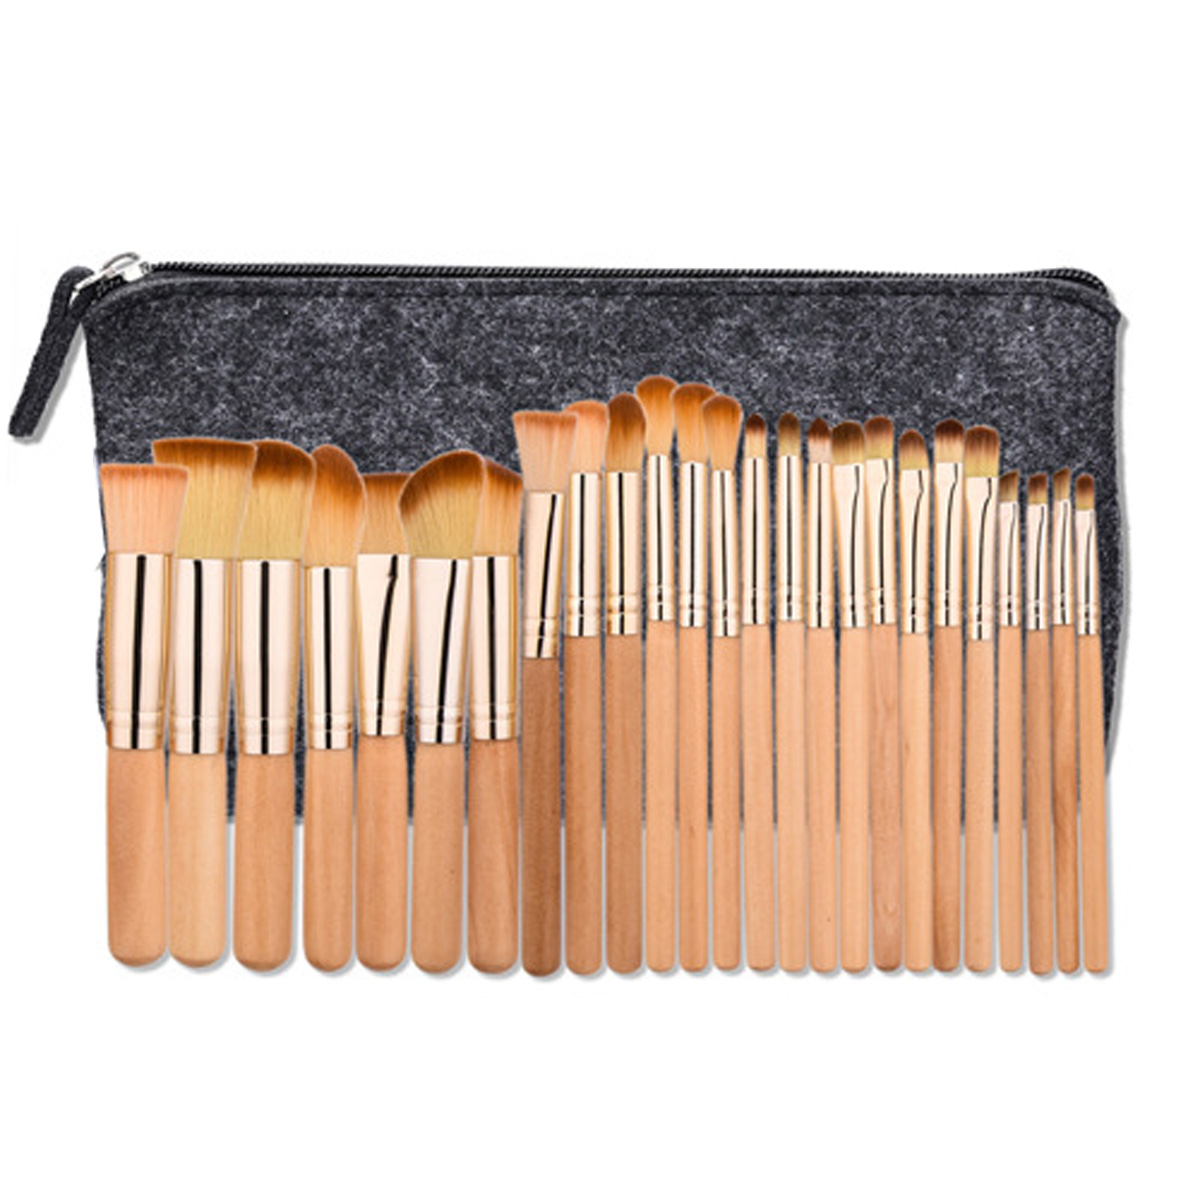 25pcs Beauty Wood Professional Makeup Brushes Set Brown Make Up Brush Tools Kit with Cosmetics Women Bag Pincel Maquiagem 23 pieces professional versatile portable makeup brush set cosmetics brushes kit make up maquillaje with grass green pouch bag